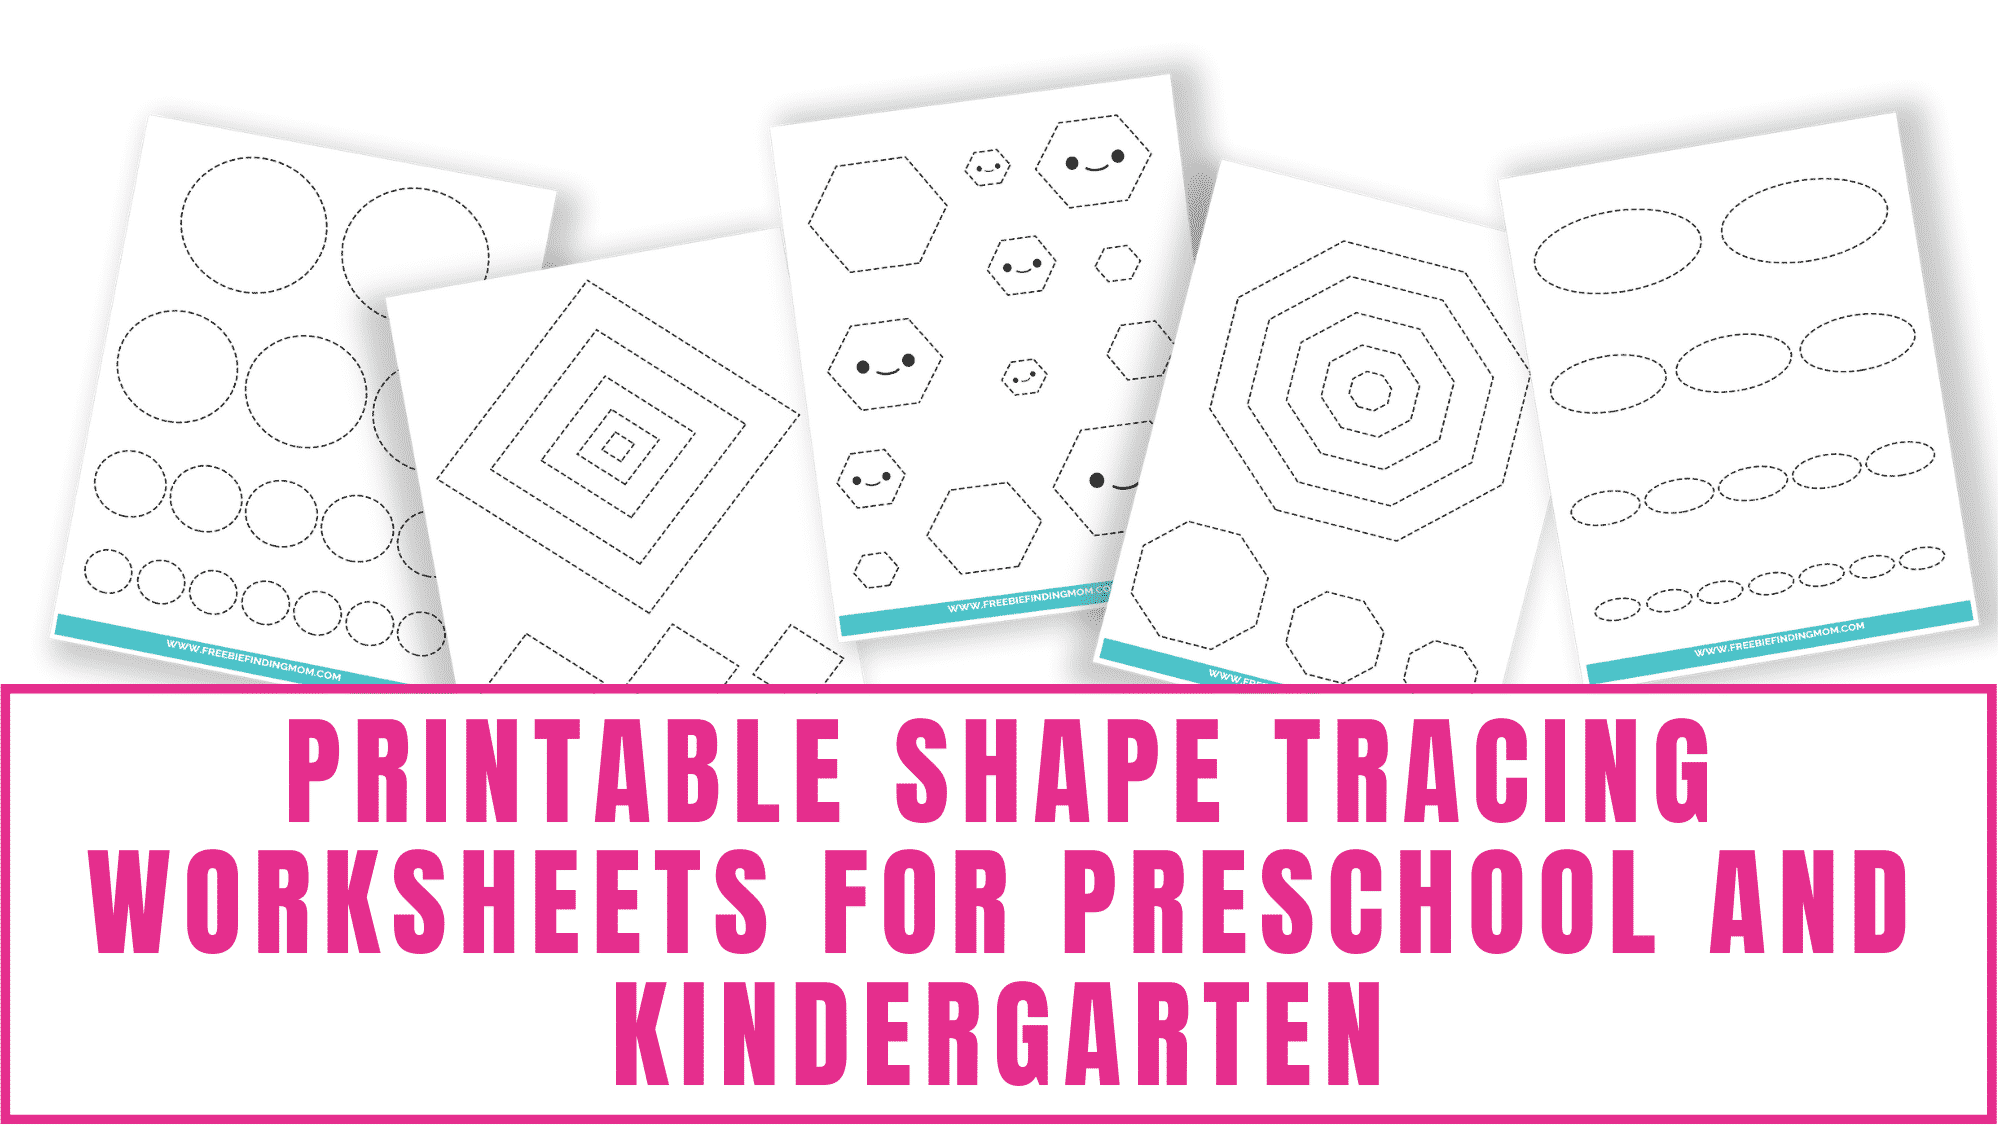 Printable shape tracing worksheets for preschool and kindergarten make learning how to draw shapes fun. Encourage your kids to turn these shape tracing pages into shape coloring pages by decorating them.